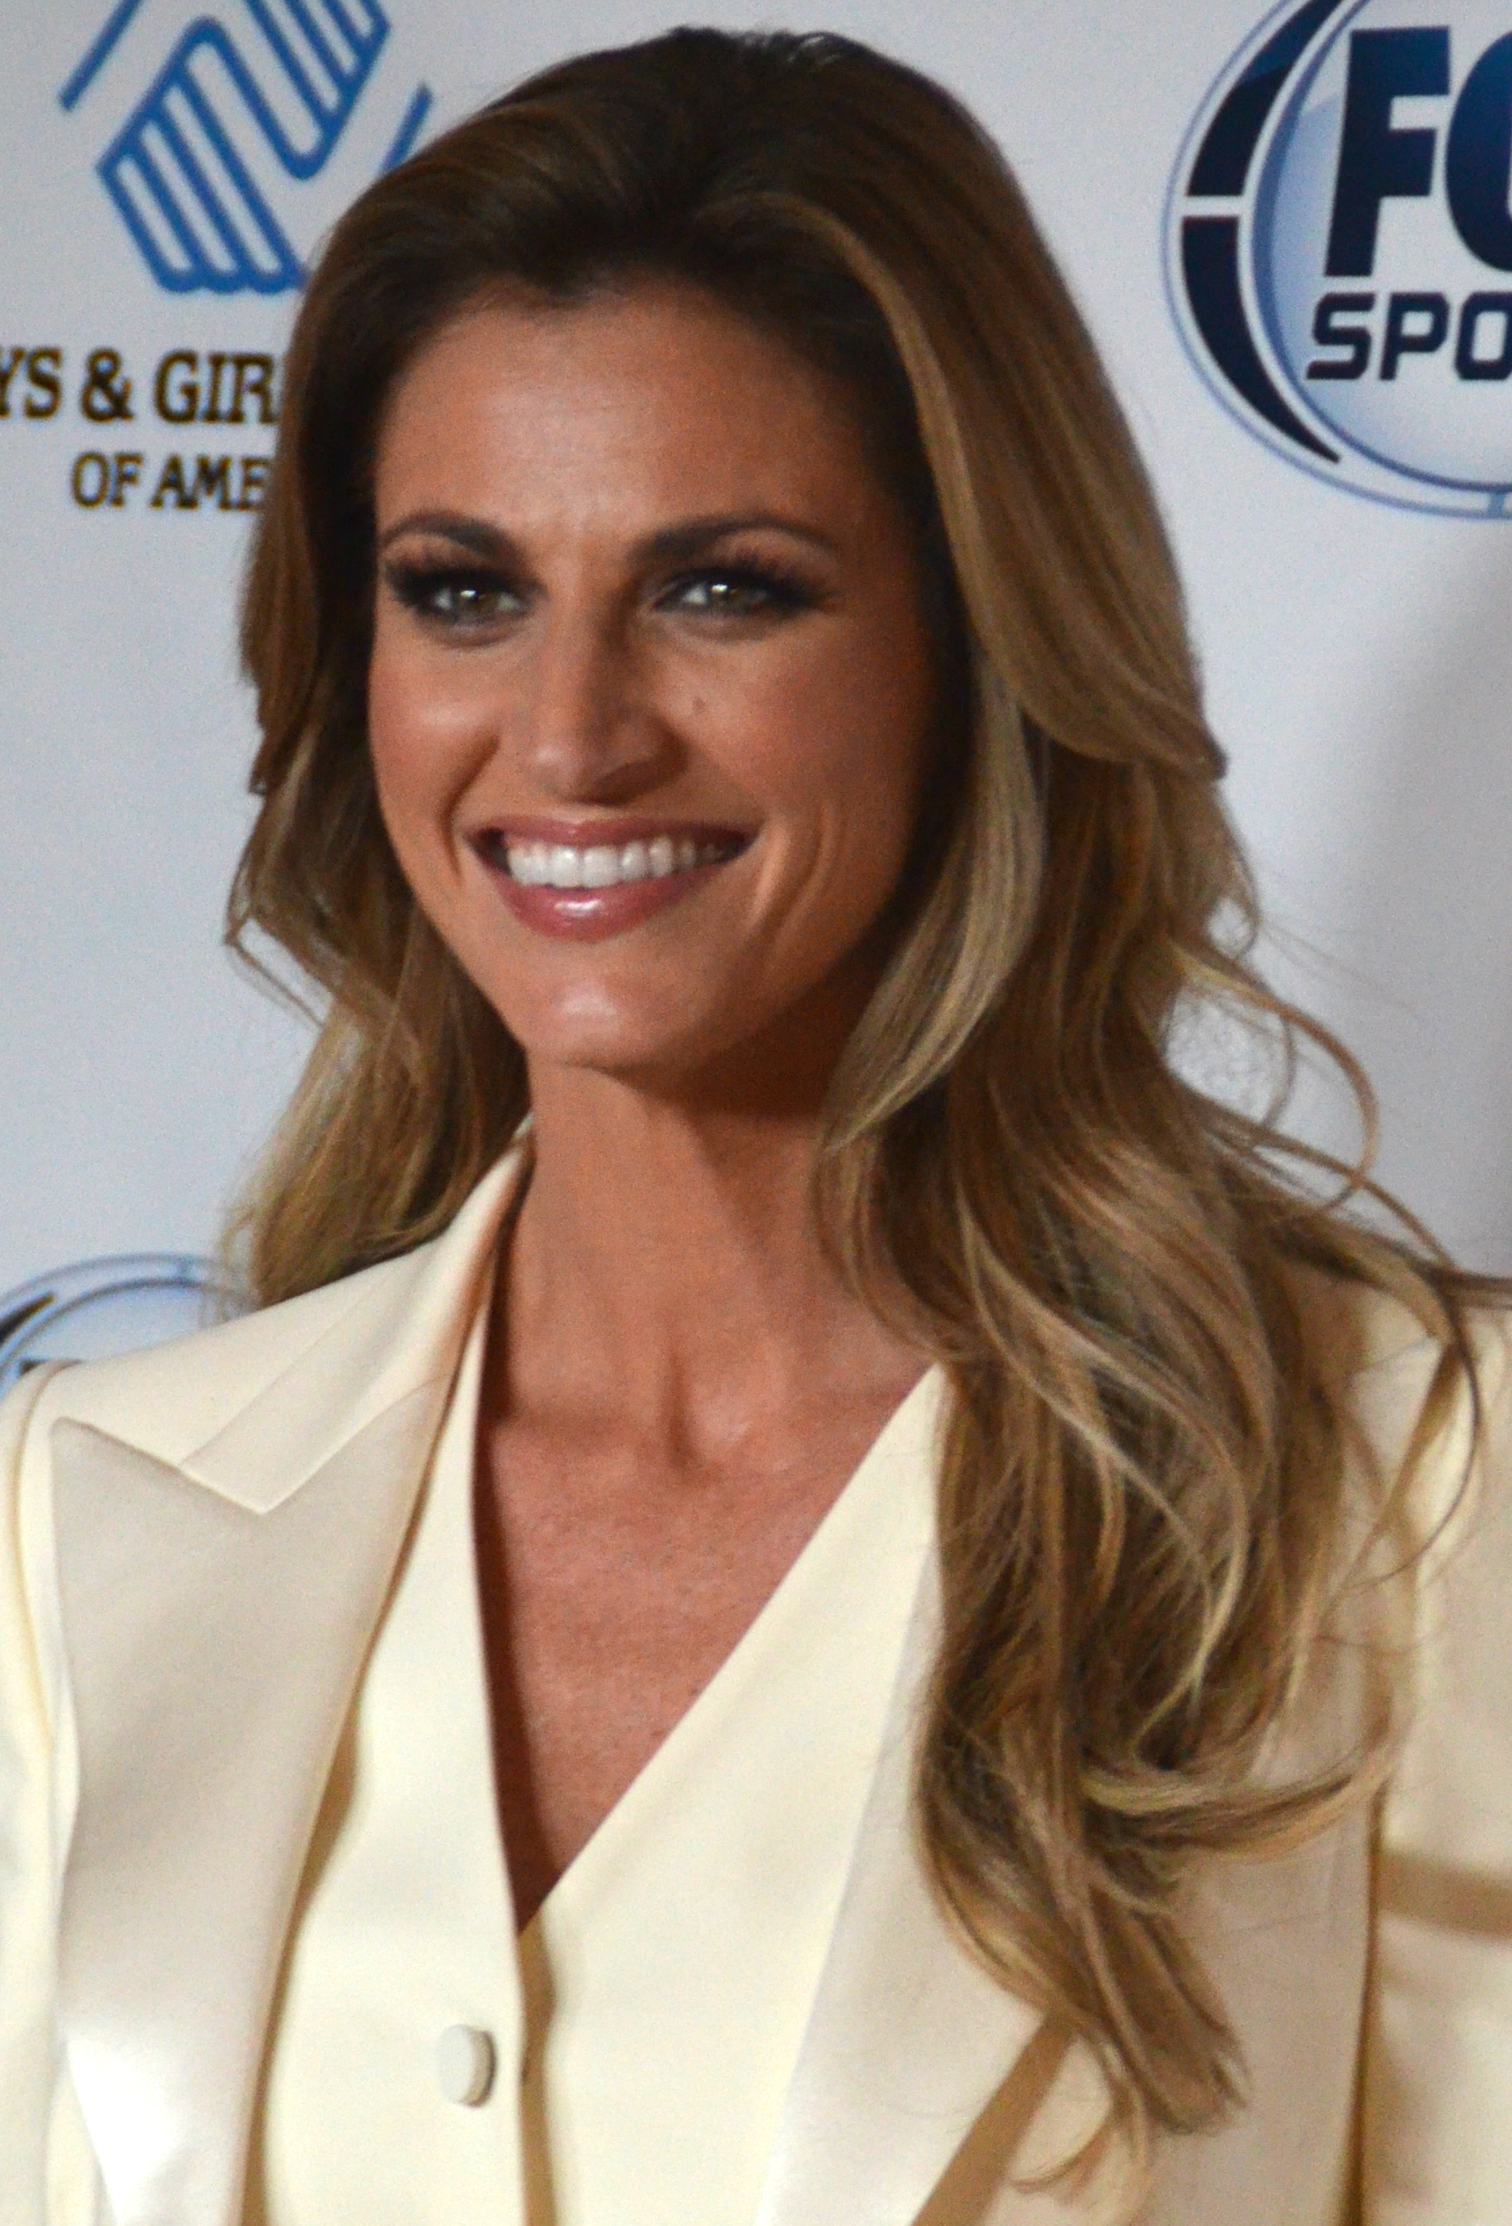 Erin Andrews Wikipedia